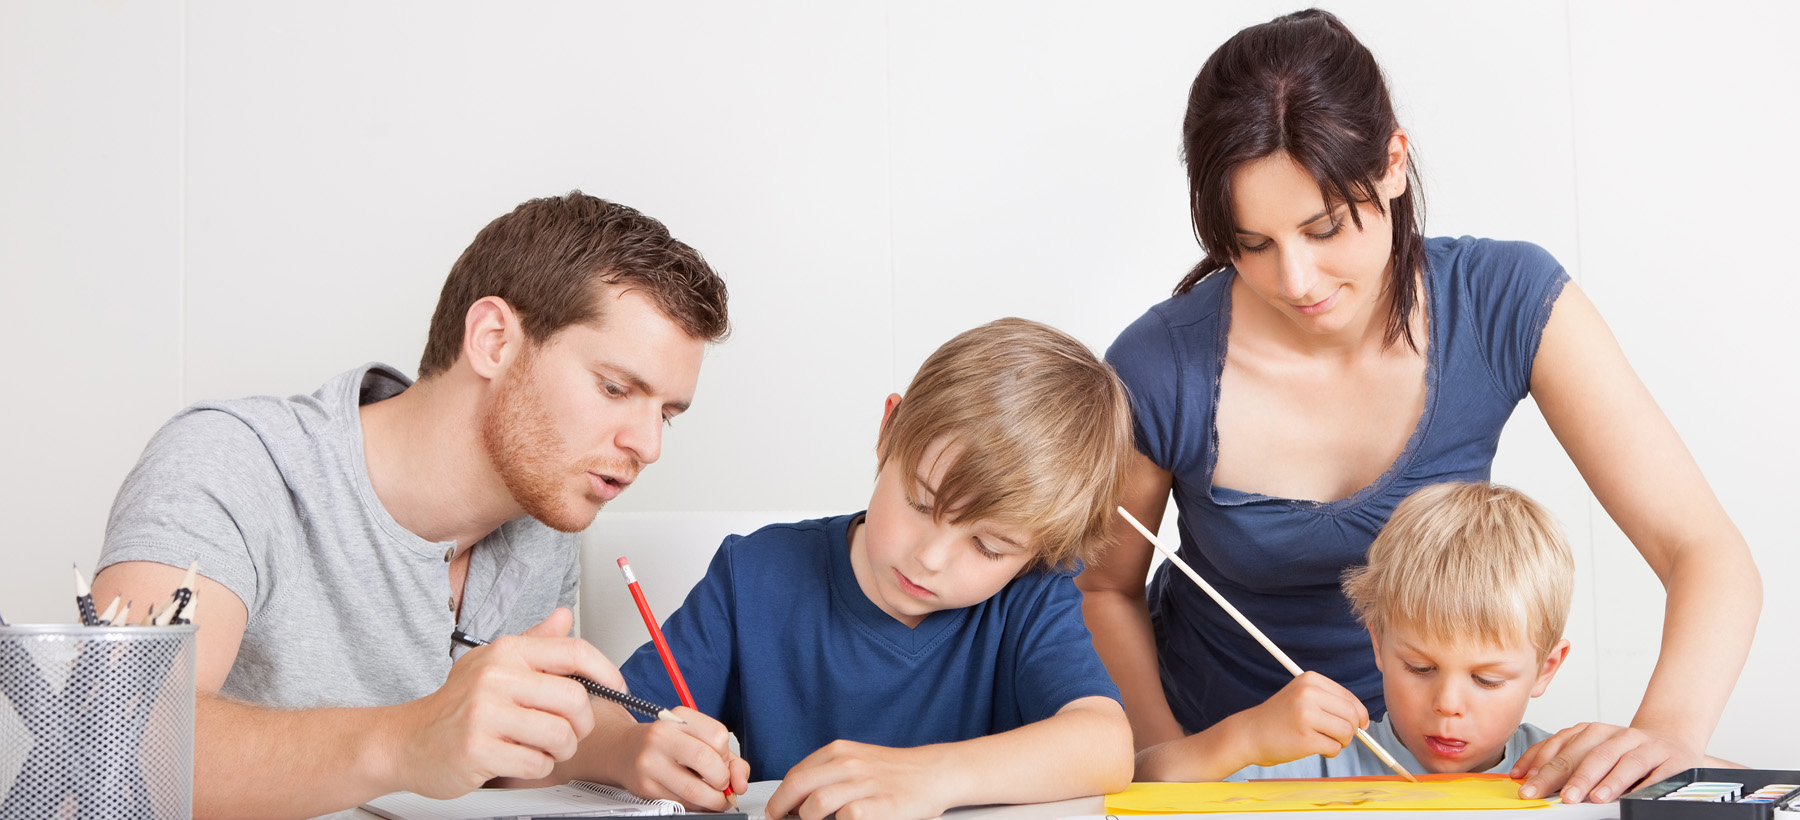 Male and female adult helping children with homework